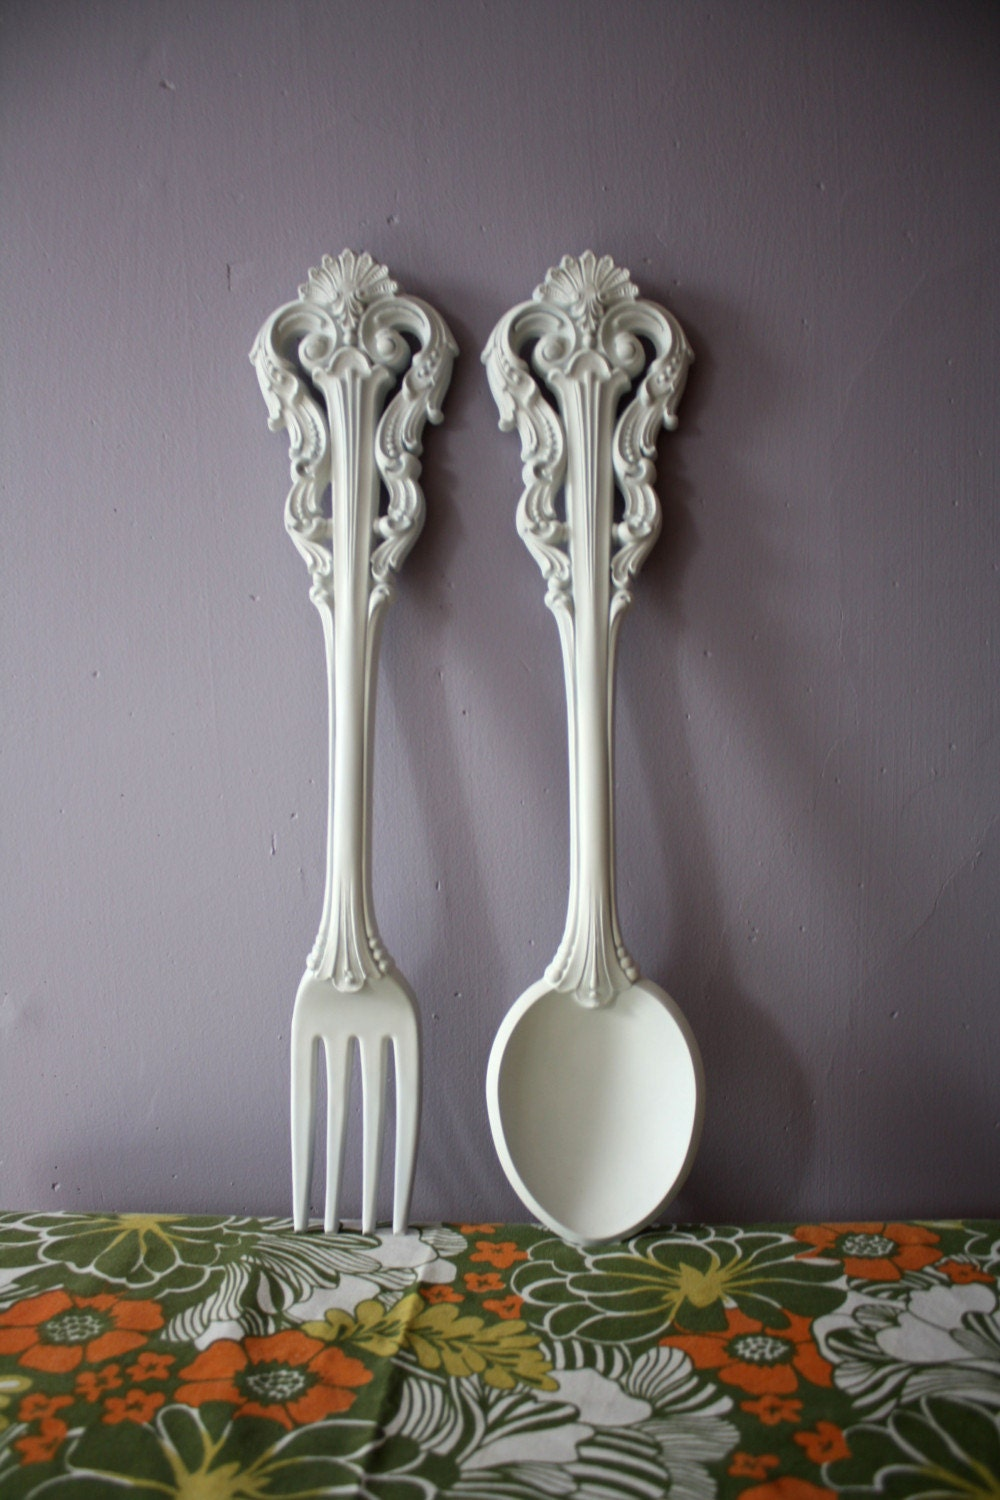 Giant Vintage Spoon Fork Wall Hanging Kitchen